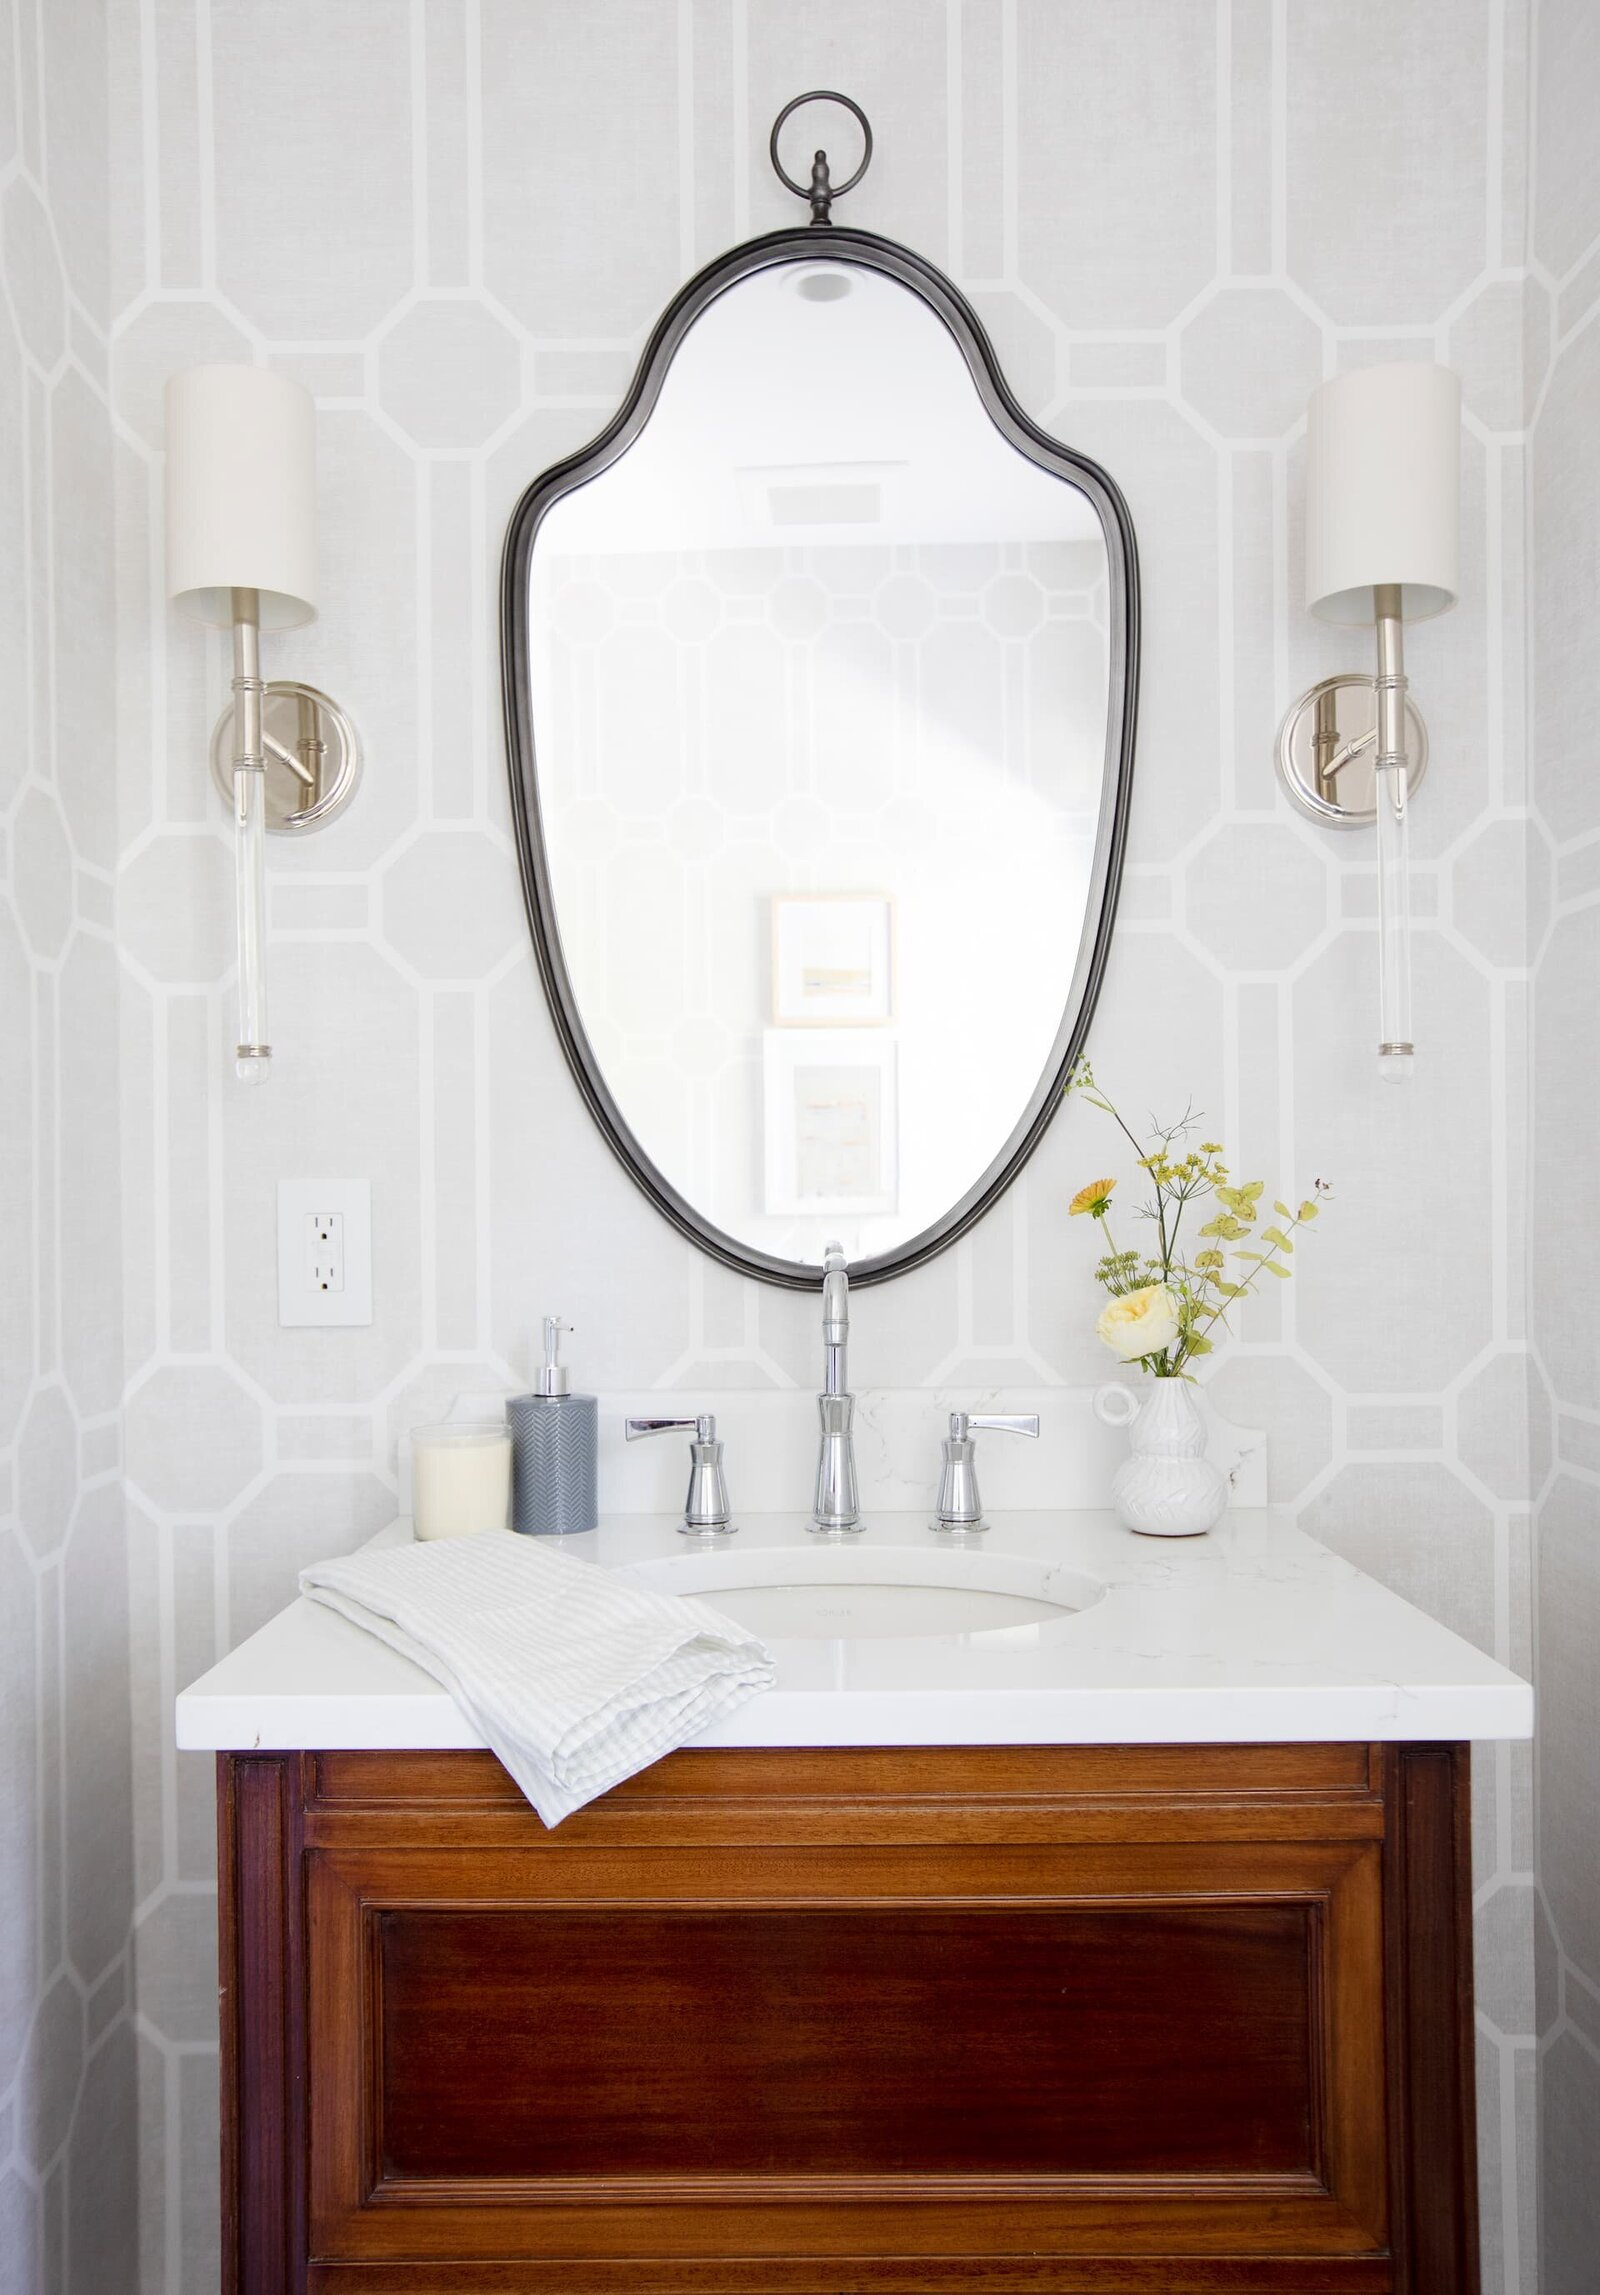 Granville Street l Powder Room with Trellis Wallpaper l Vintage Vanity with Black Mirror and pair of Lucite Wall Sconces